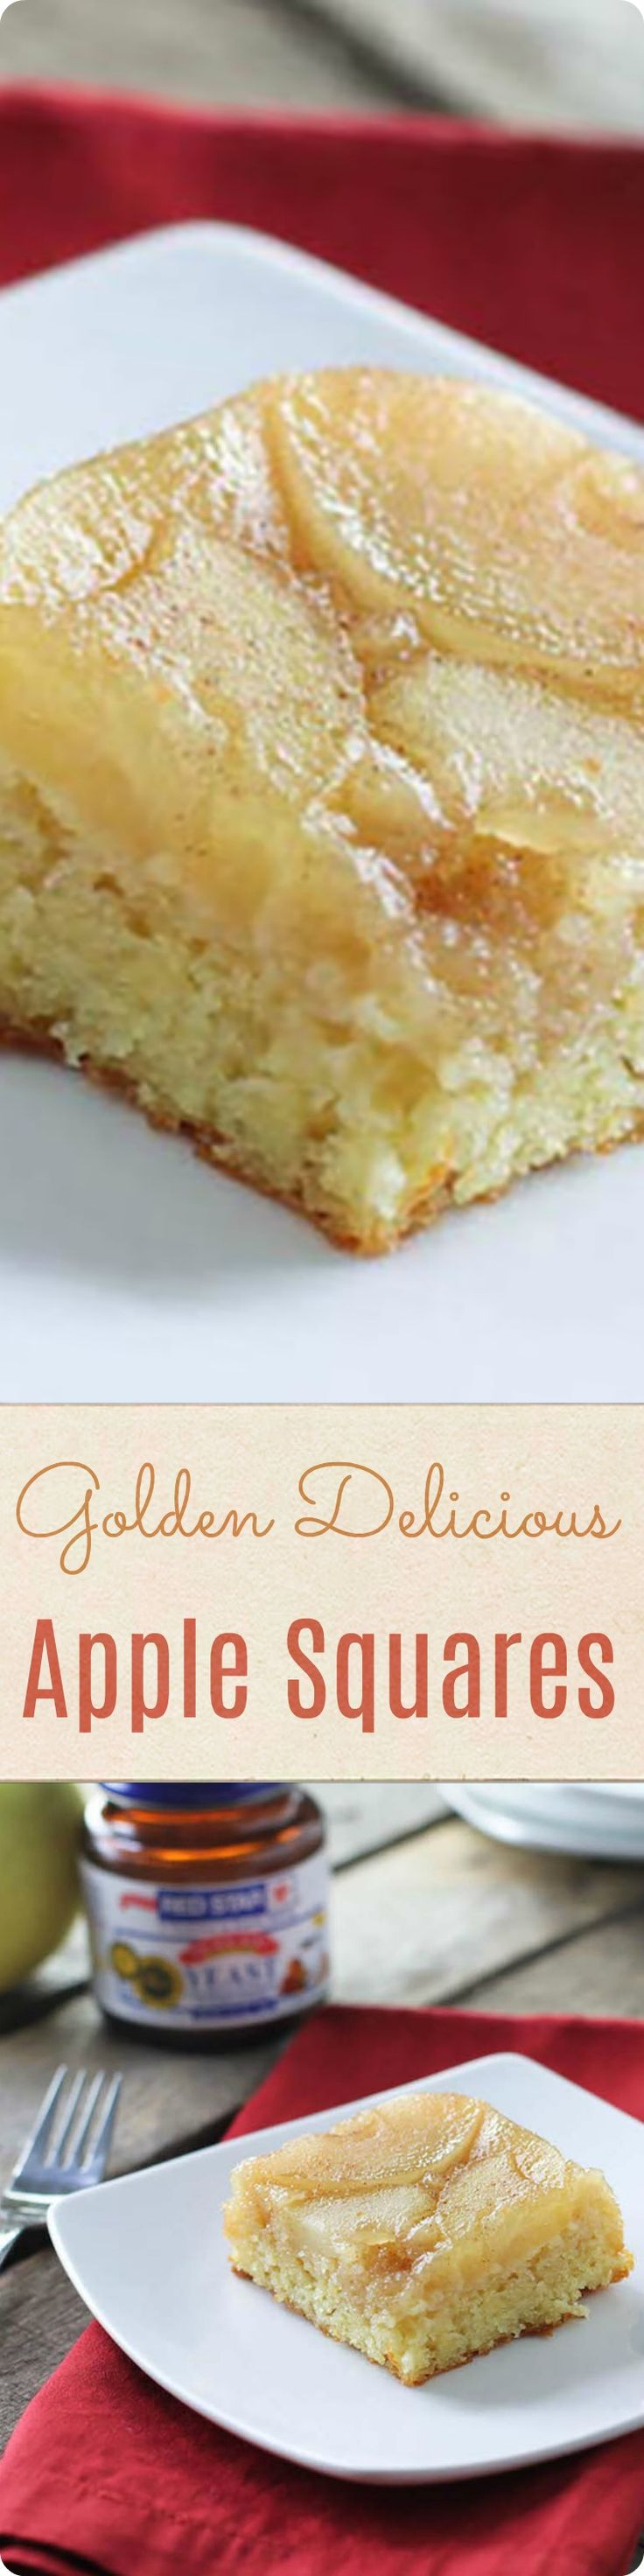 Golden Delicious Apple Squares | An autumn apple cake that's perfect for an afternoon snack or for serving guests. Find recipe at redstaryeast.com.